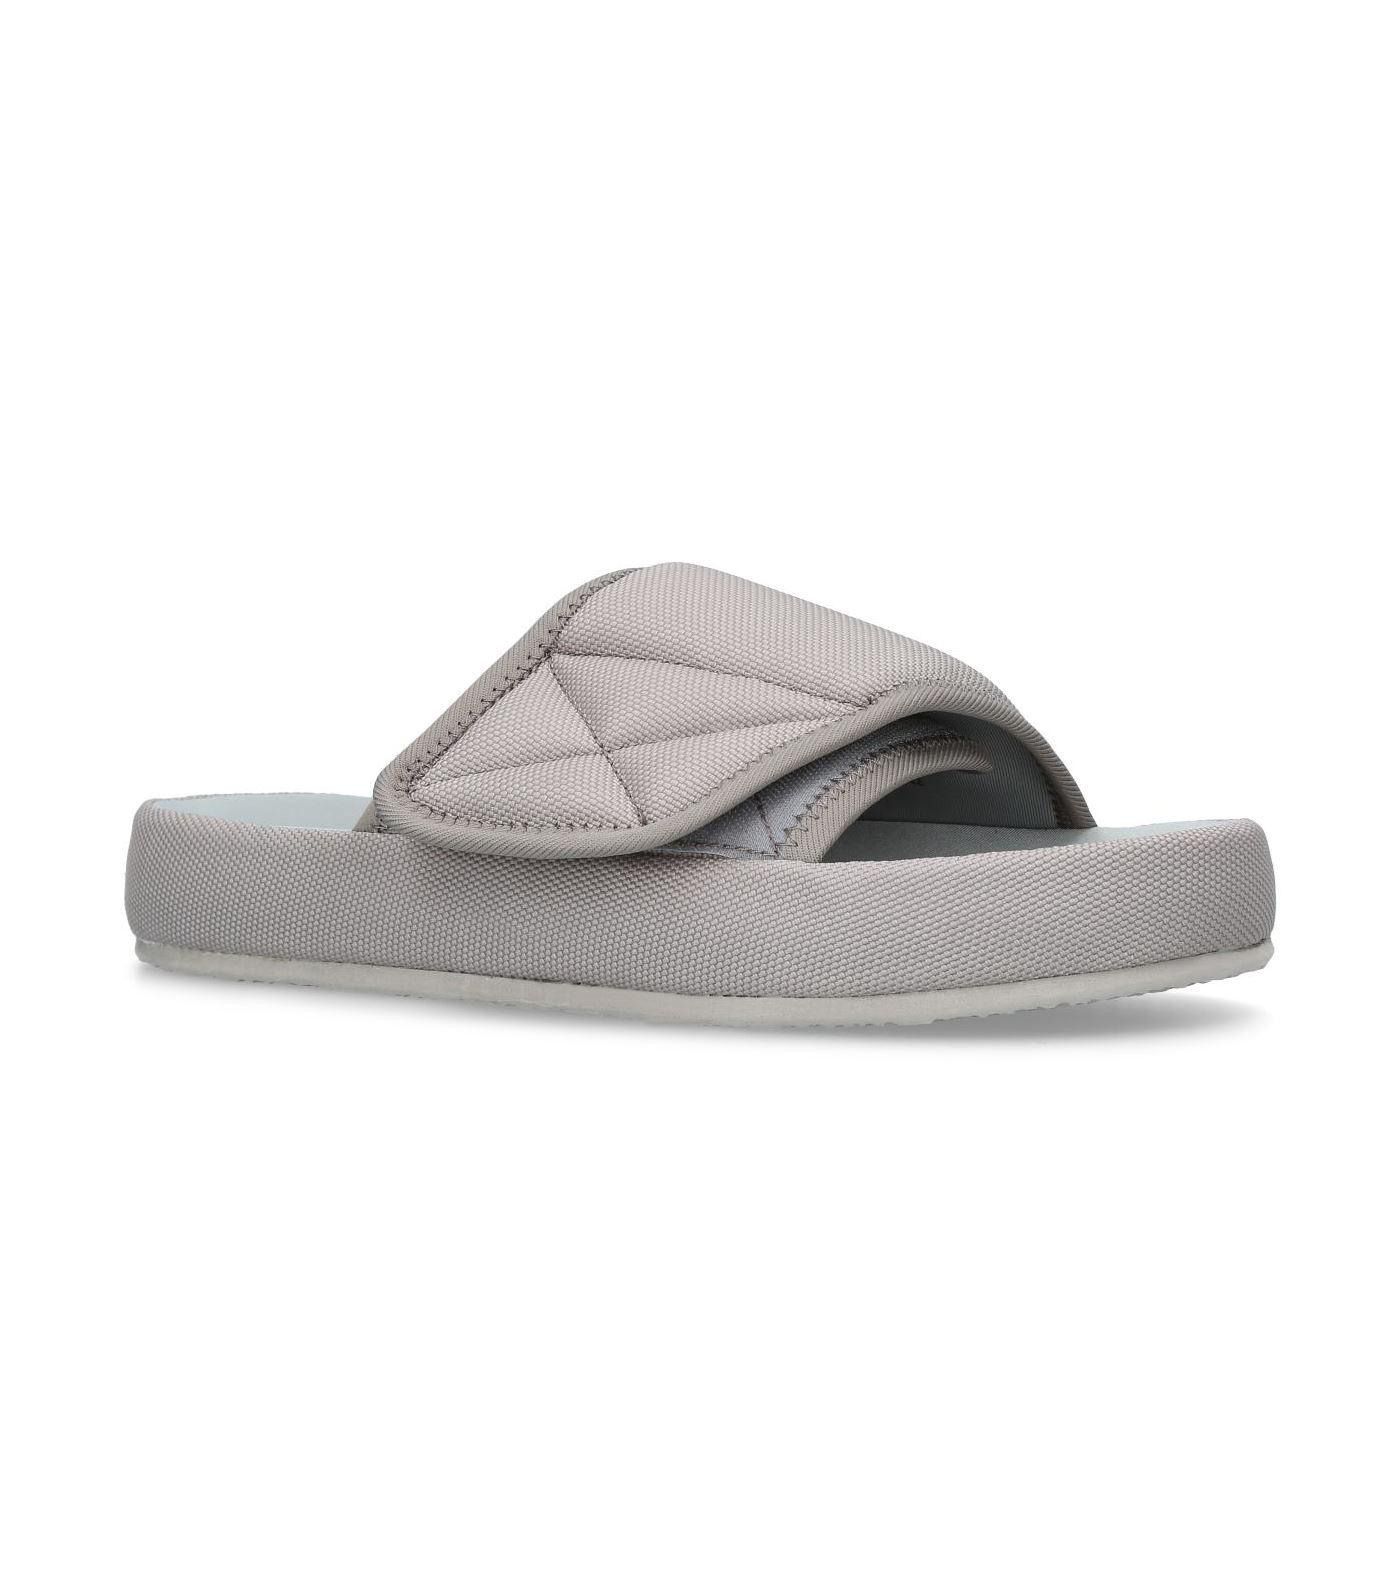 99f1c96c0491b Gallery. Previously sold at  Harrods · Men s Slides